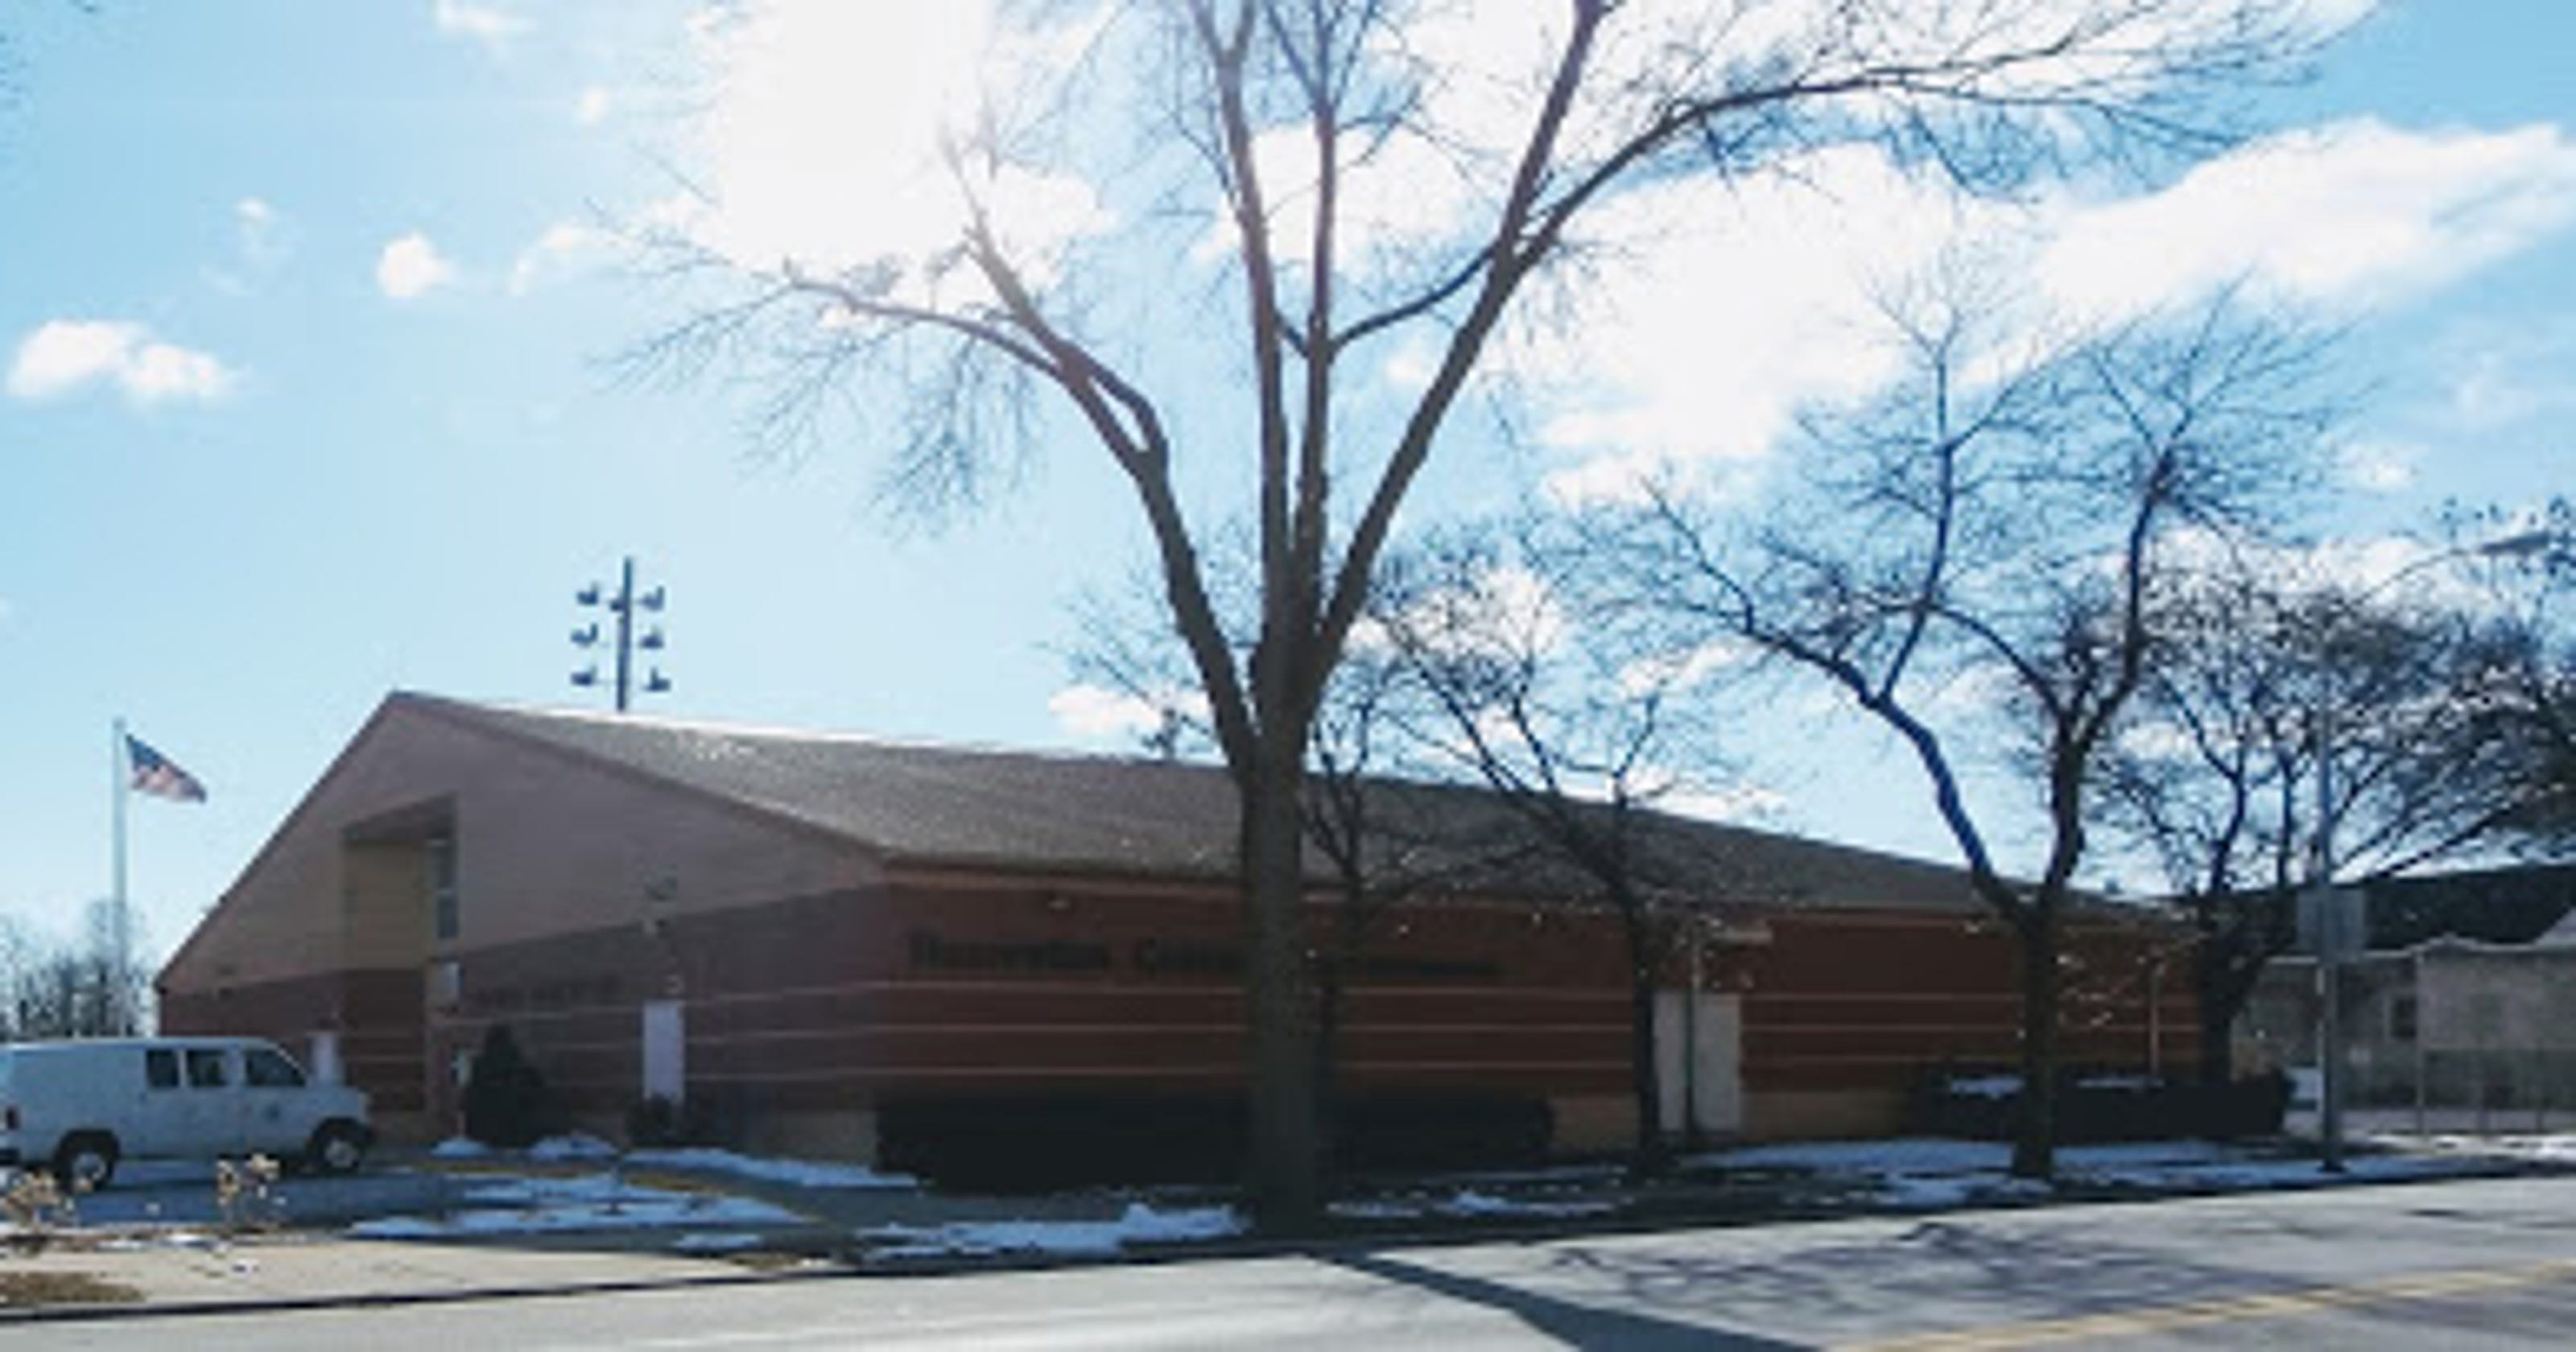 West Allis might get permanent community center, expanded